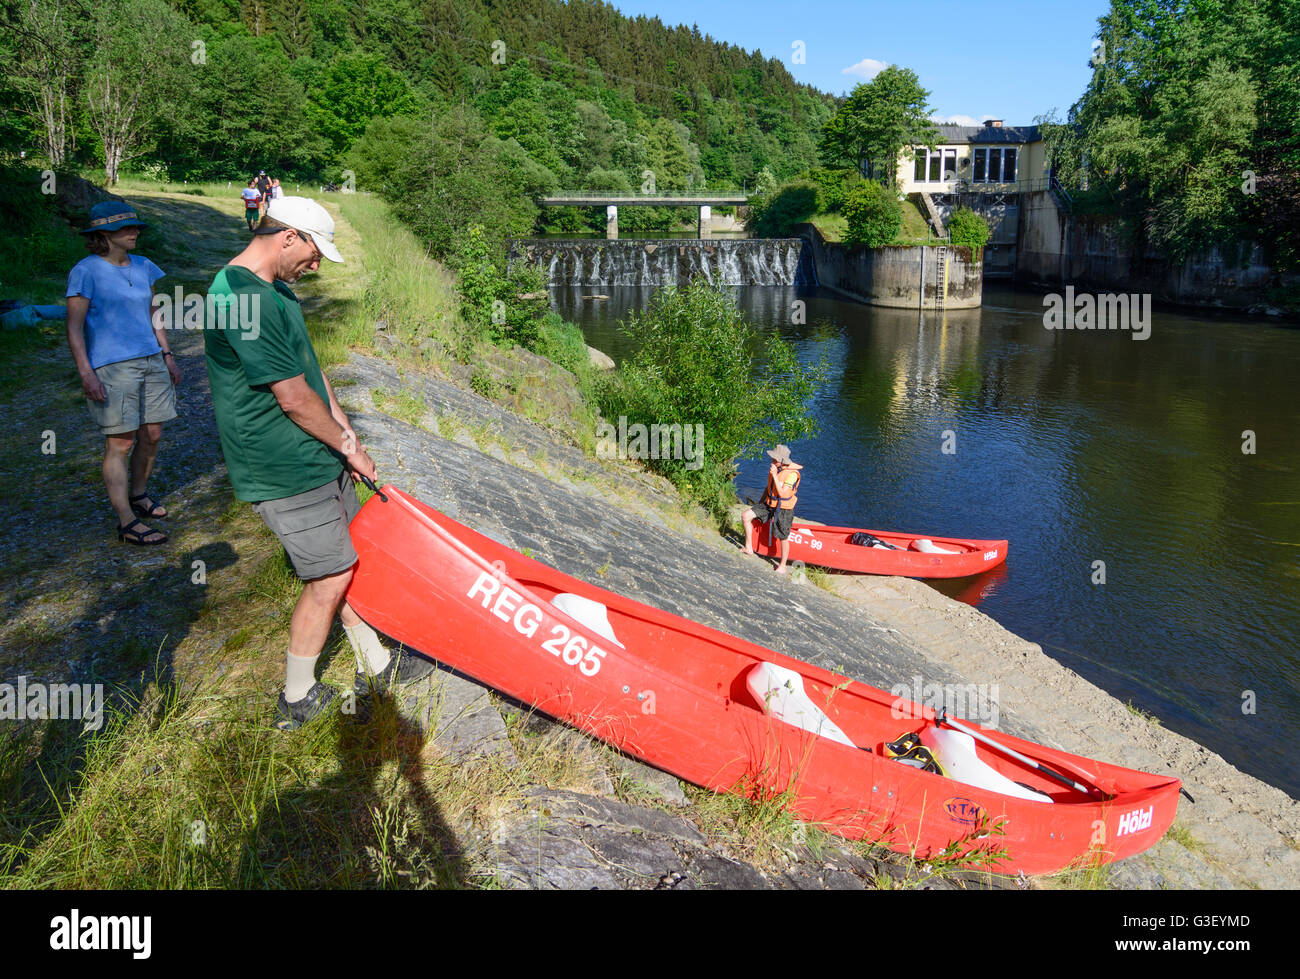 Paddler portage a canoe ( Canadian ) at hydroelectric power plant Gumpenried on the river Schwarzer Regen, Germany, - Stock Image